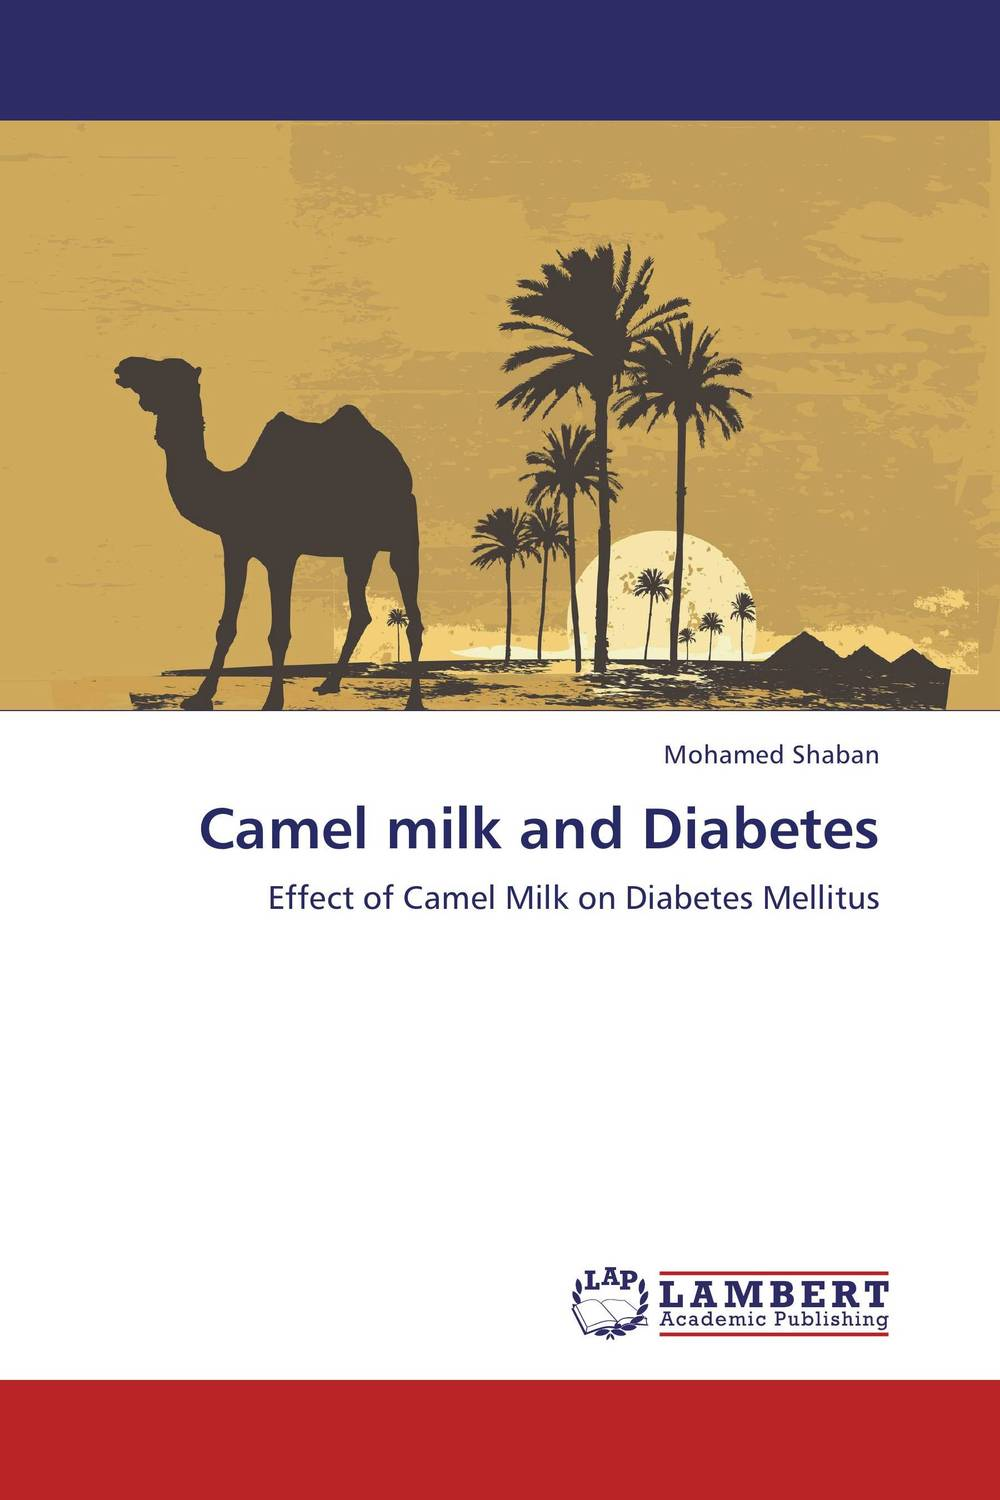 Camel milk and Diabetes